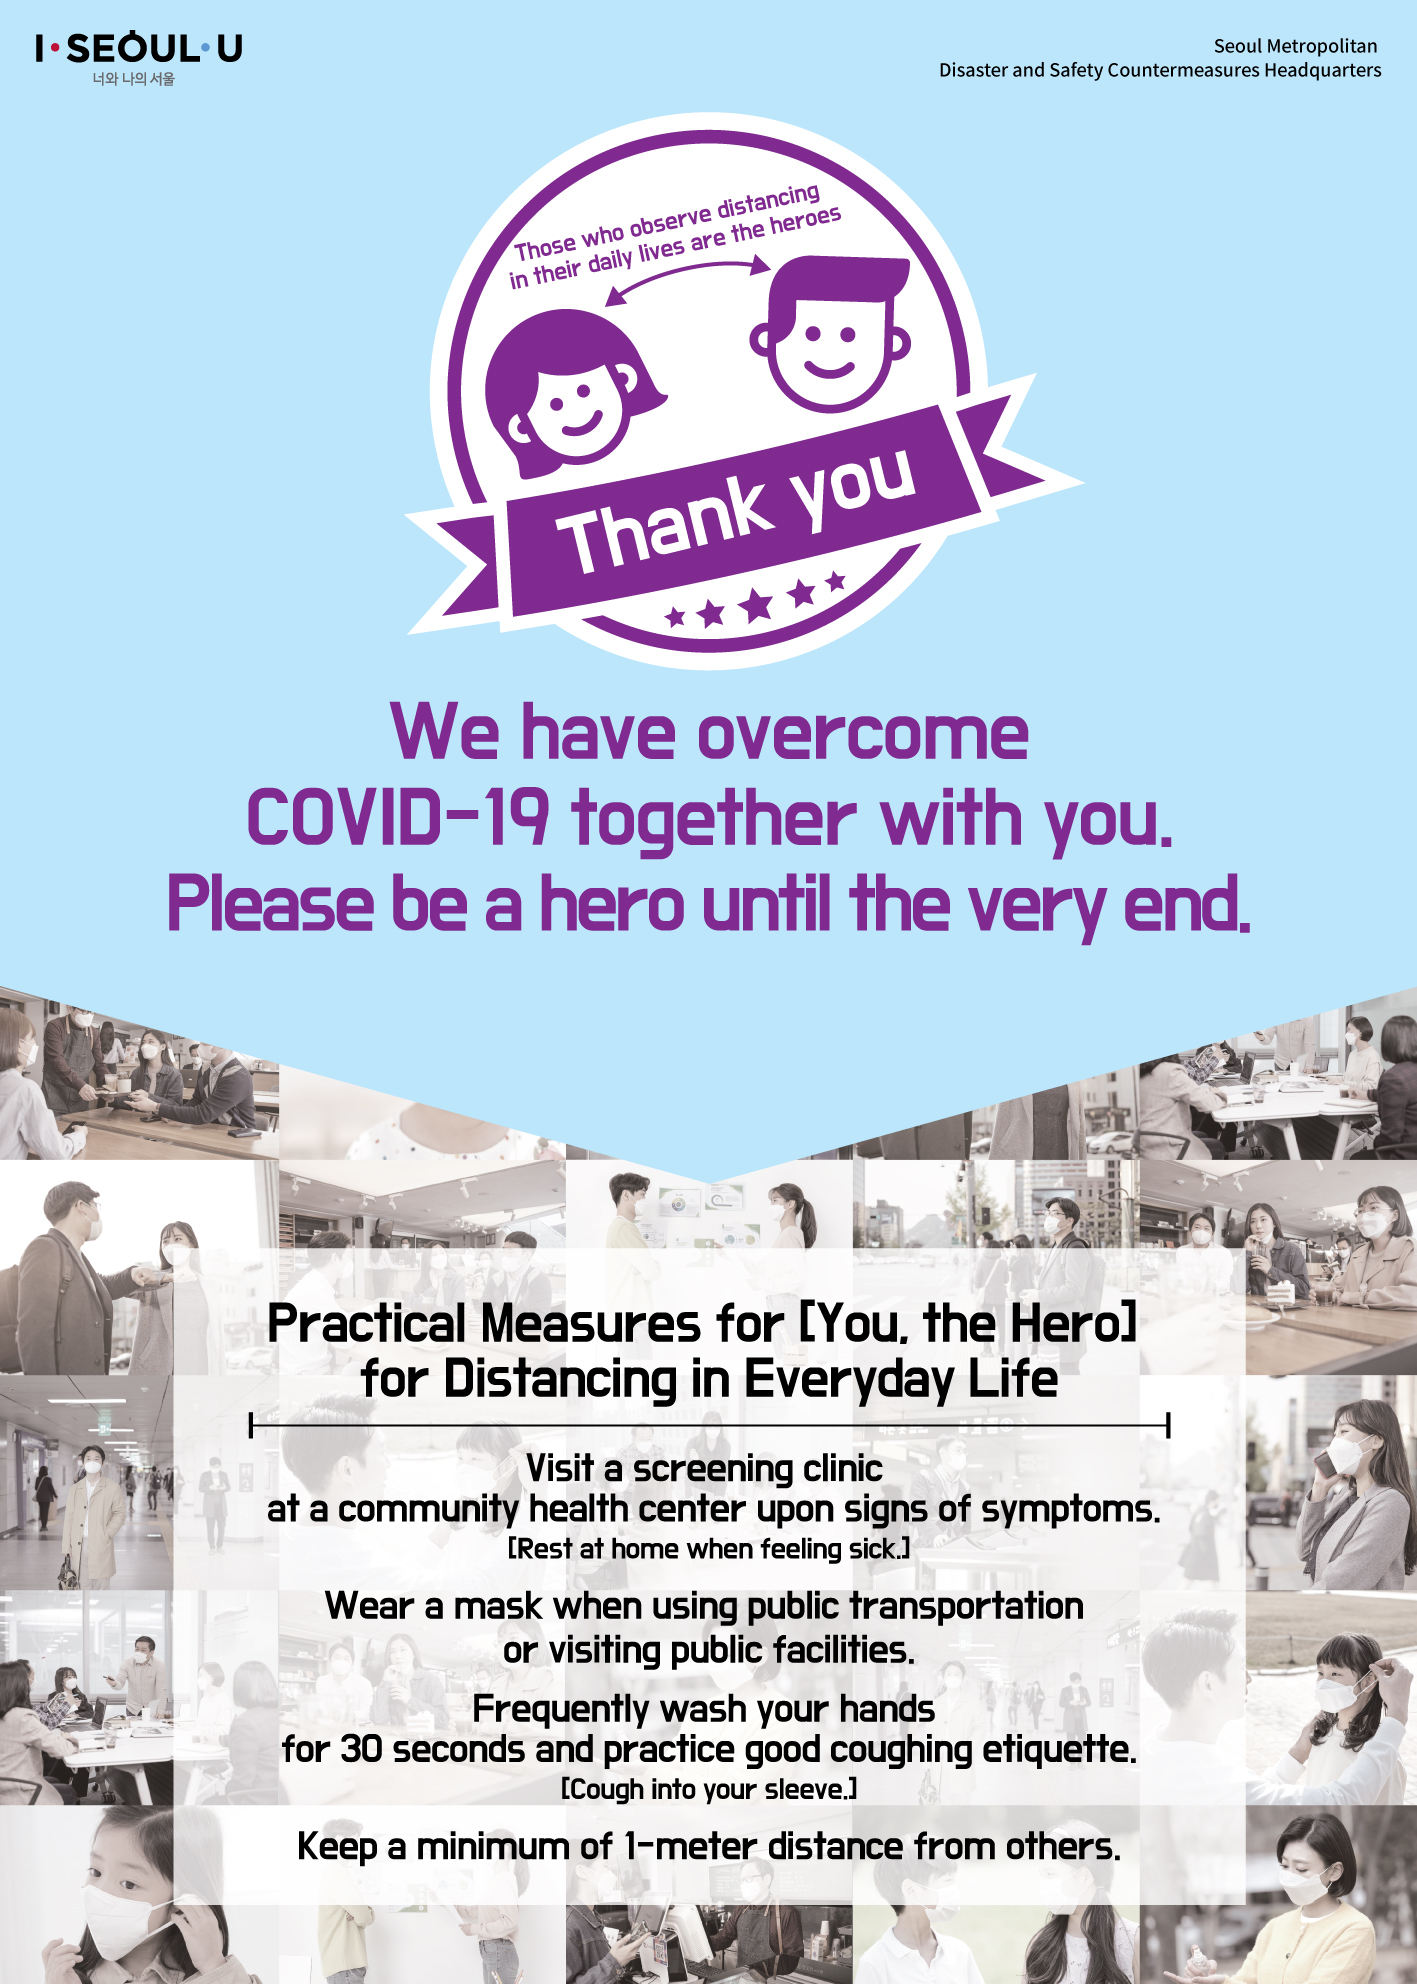 Those who observe social distancing in daily lives are the heroes Seoul Metropolitan  Disaster and Safety Countermeasures Headquarters Those who observe distancing in their daily lives are the heroes Thank you We overcame COVID-19 together with you. Please be a hero until the very end. Practical Measures for [You, the Hero]  for Distancing in Everyday Life Visit a screening clinic at a community health center upon signs of symptoms. [Rest at home when feeling sick.] Wear a mask when using public transportation or visiting public facilities. Frequently wash your hands for 30 seconds and practice good coughing etiquette. [Cough into your sleeve.] Keep a minimum of 1-meter distance between others. You are the hero who overcomes COVID-19.